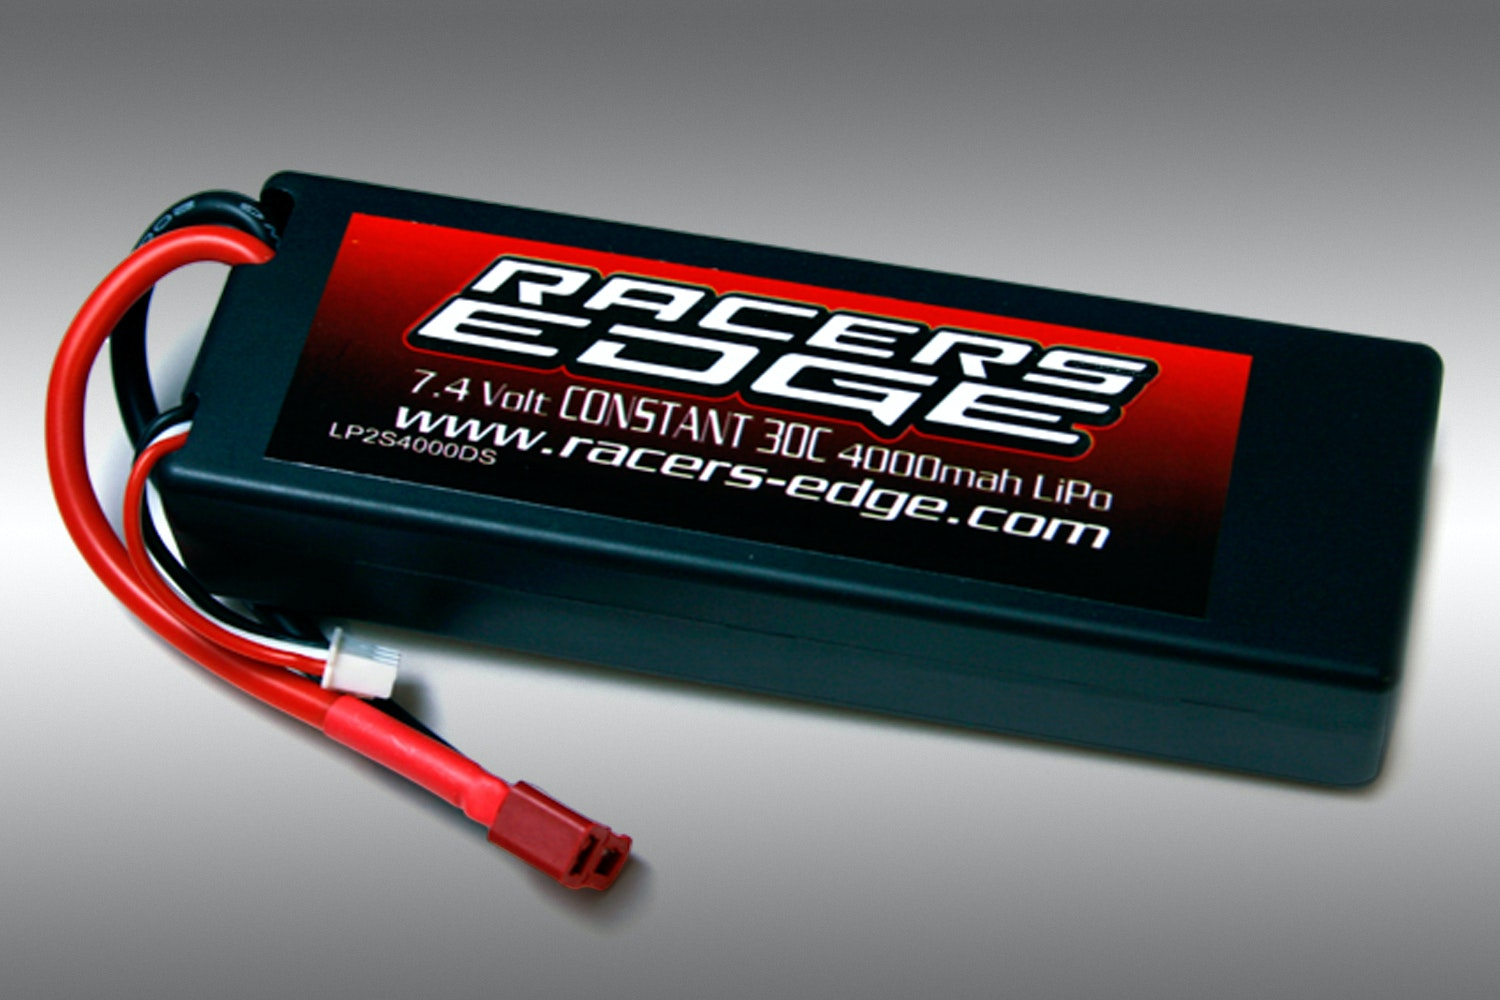 Racers Edge 7.4v 4000mah LiPo Bundle (2 Batteries)